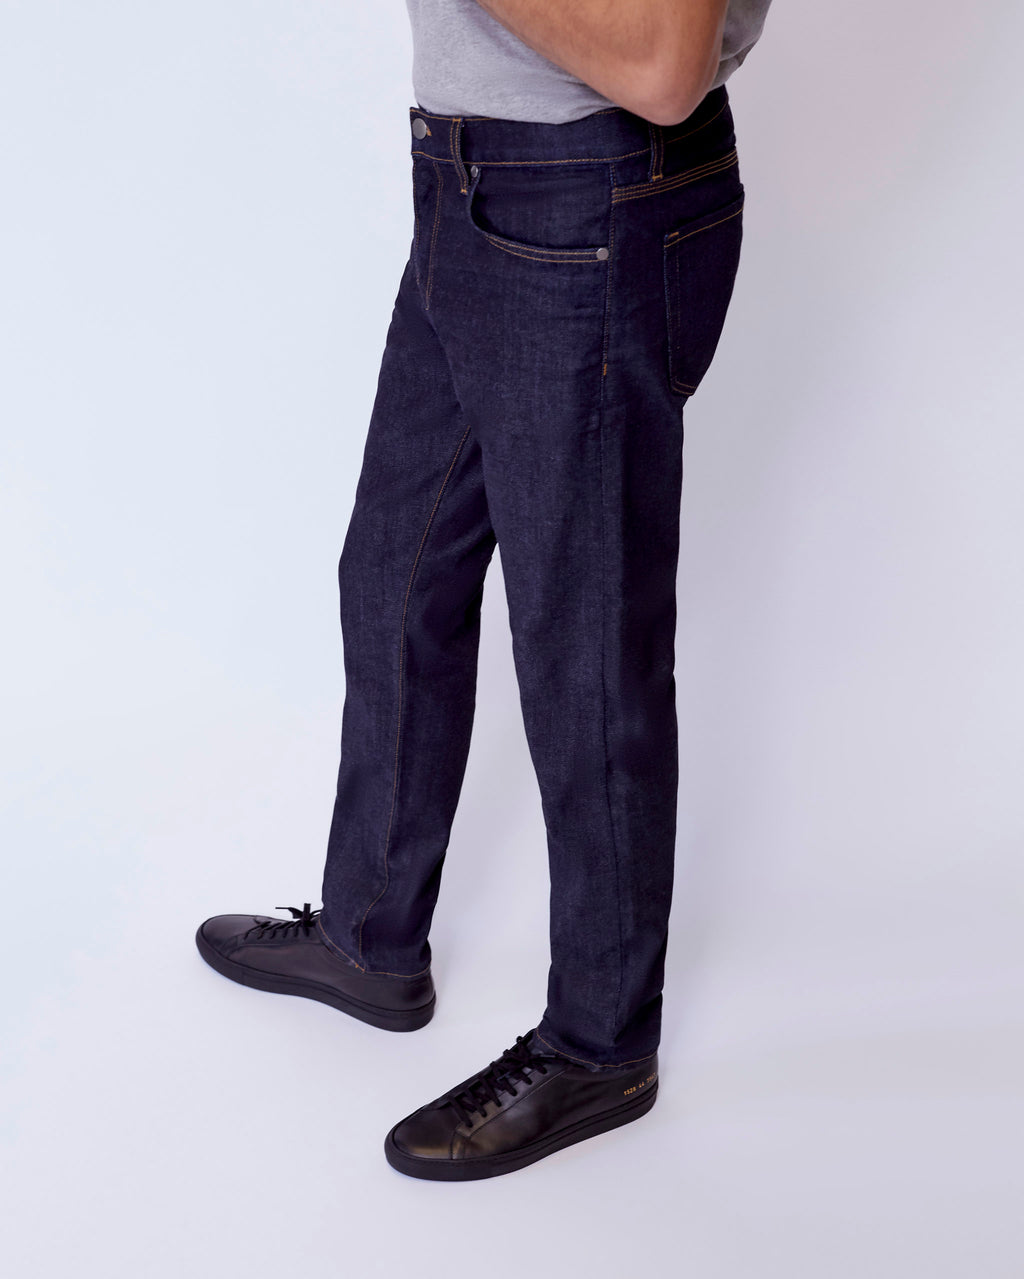 The Modern Slim Jean in Nelson